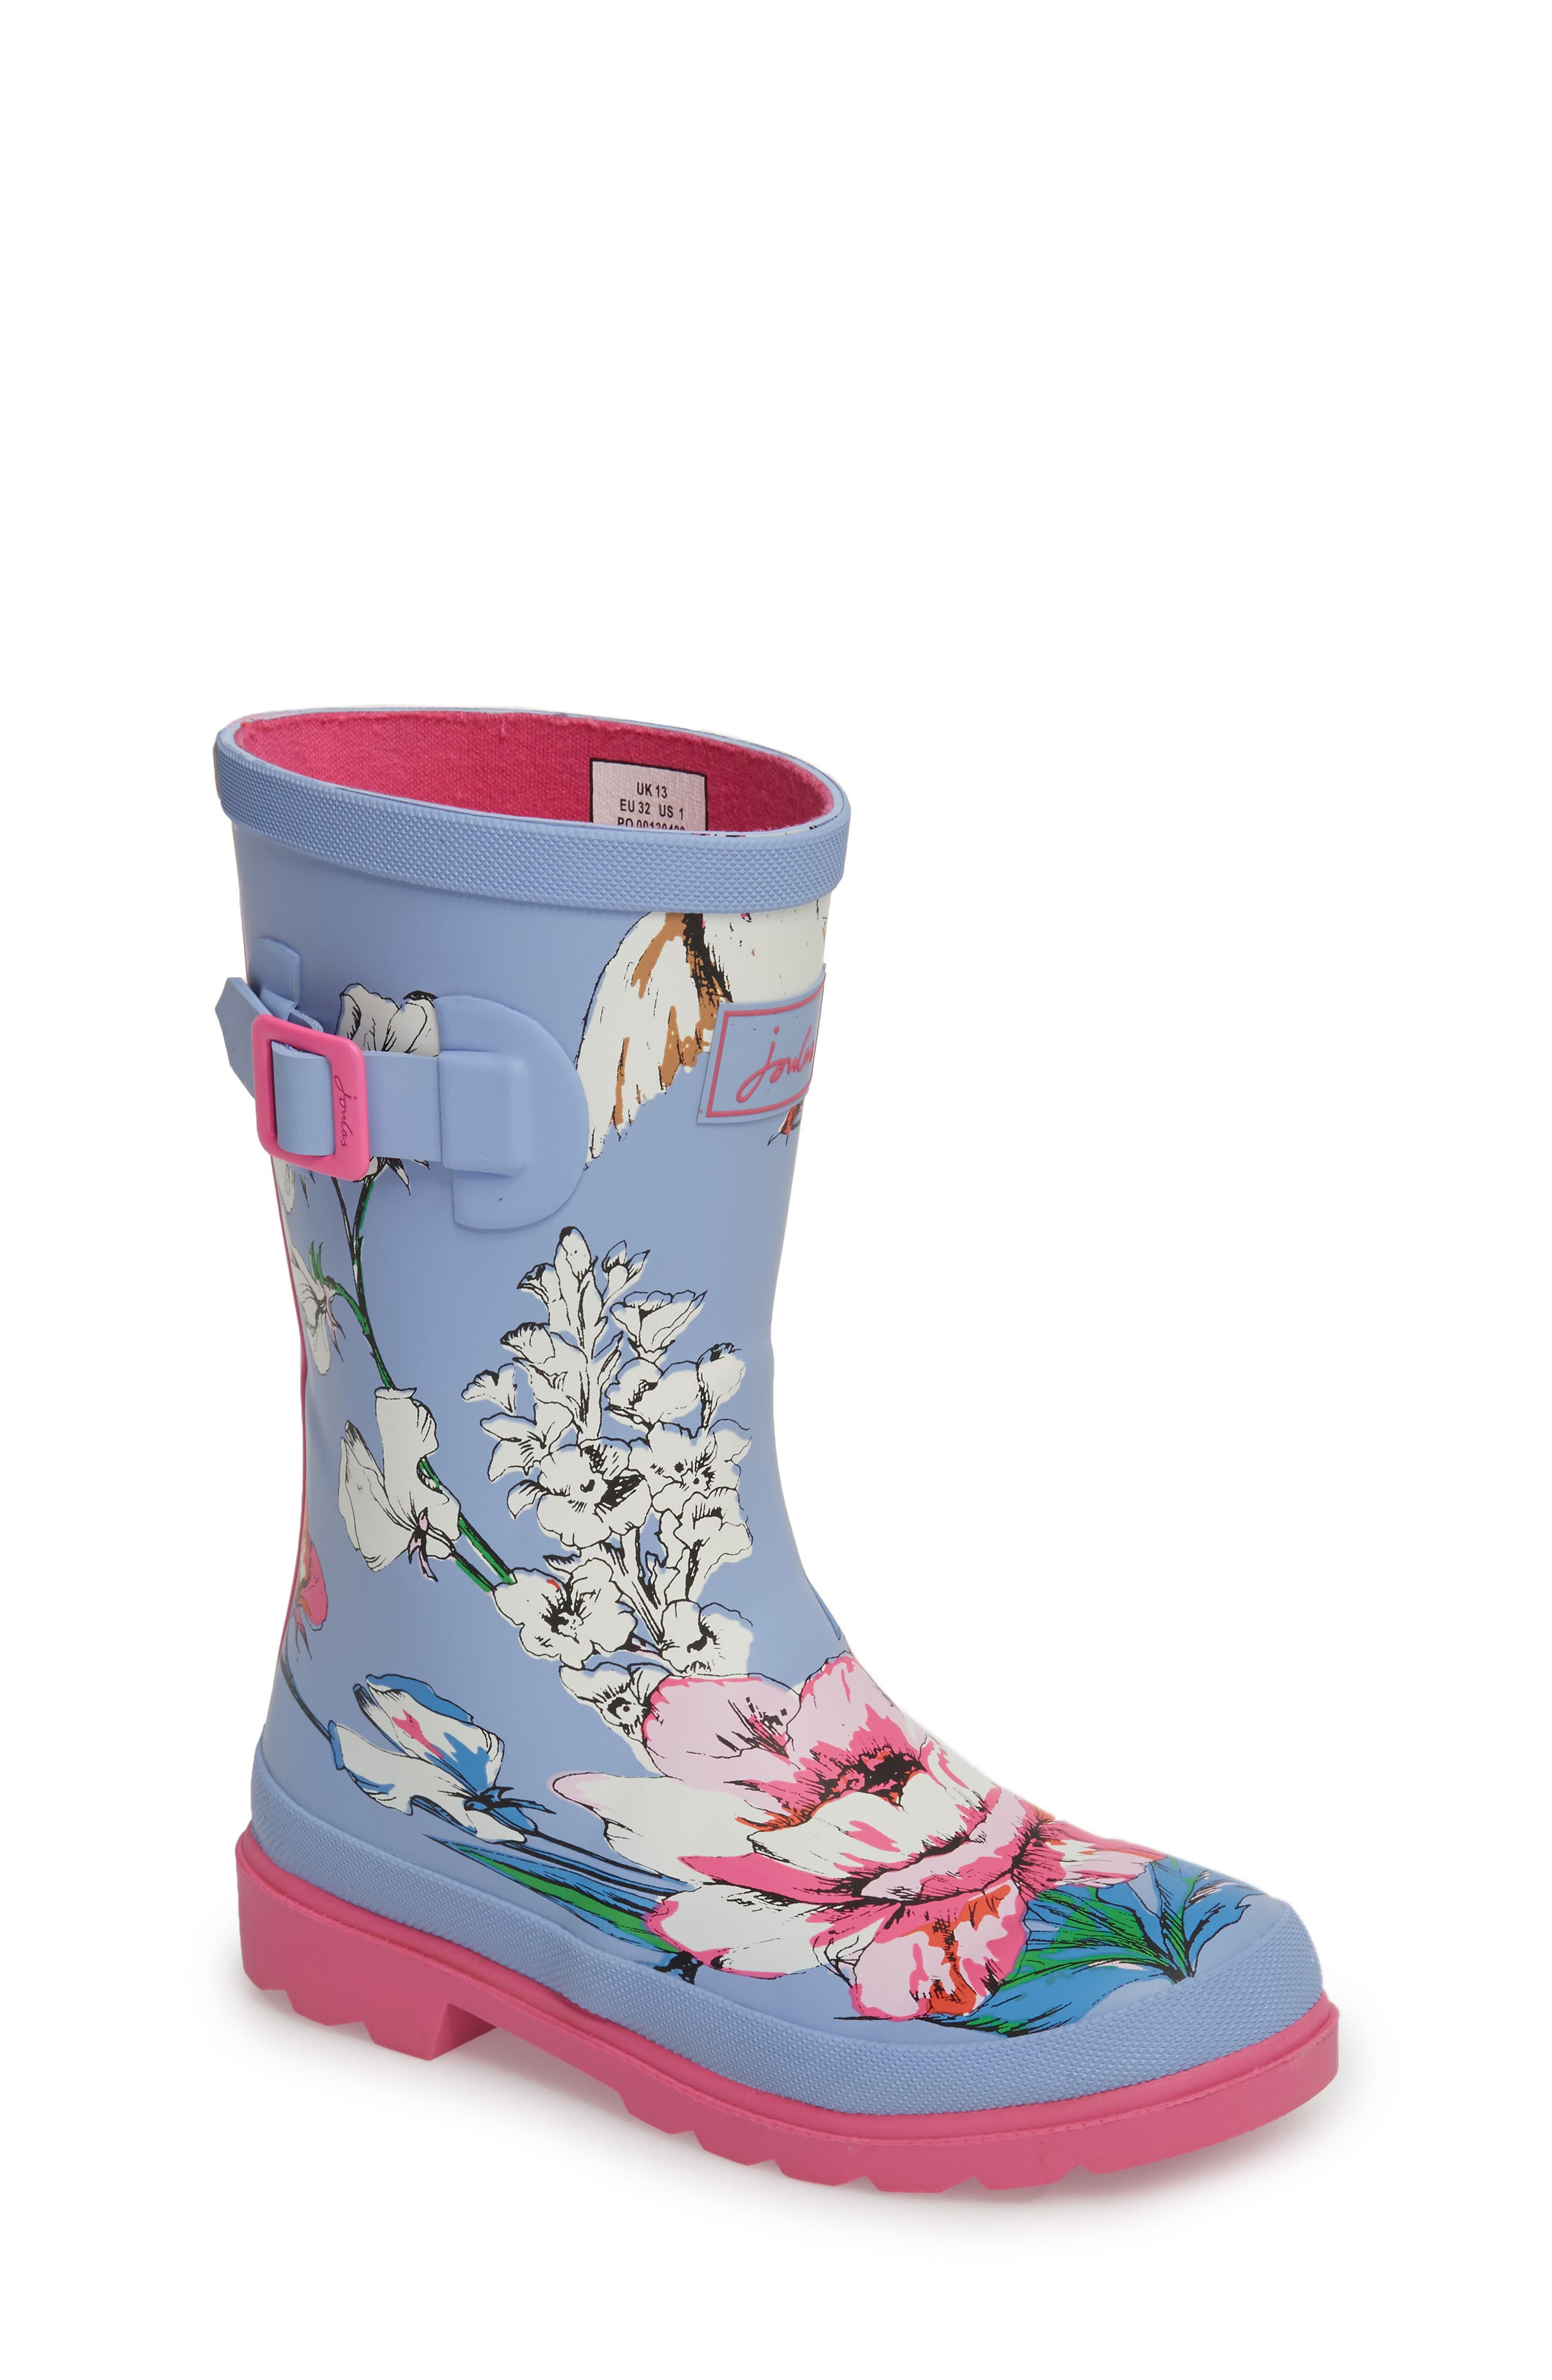 Joules Mid Height Print Welly Rain Boot (Toddler, Little Kid & Big Kid)